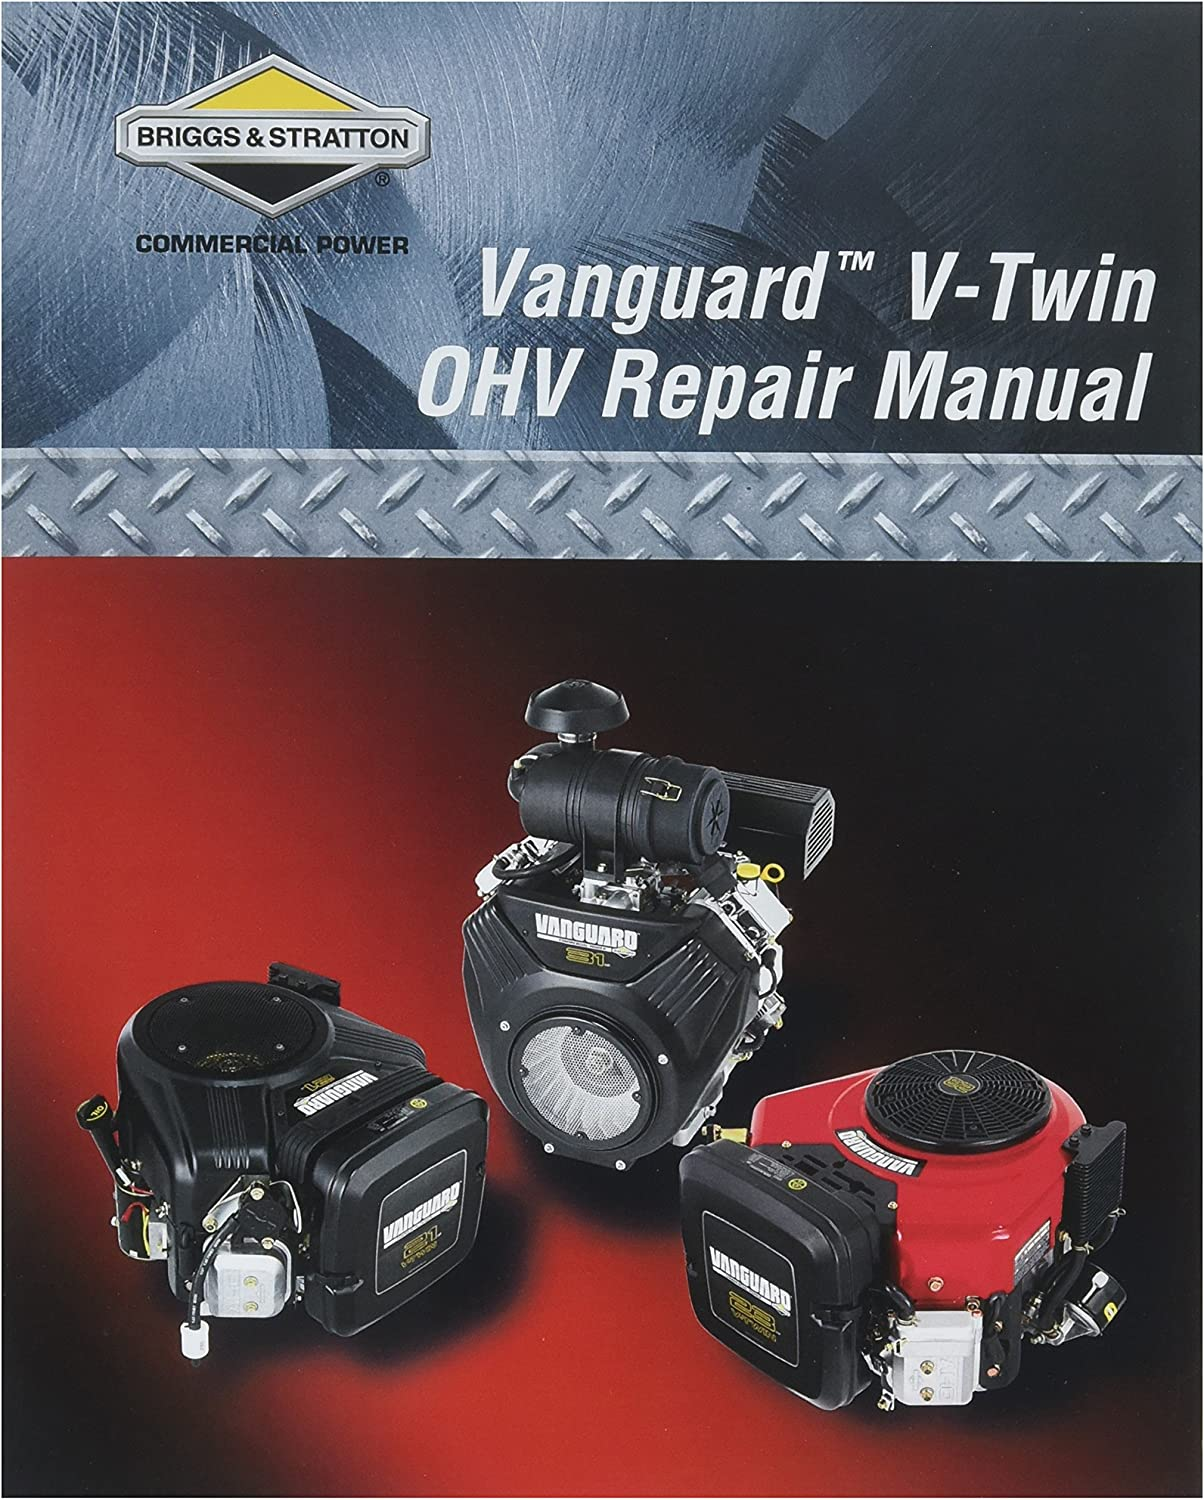 Amazon.com: Vanguard V-Twin OHV Briggs & Stratton 272144 ...